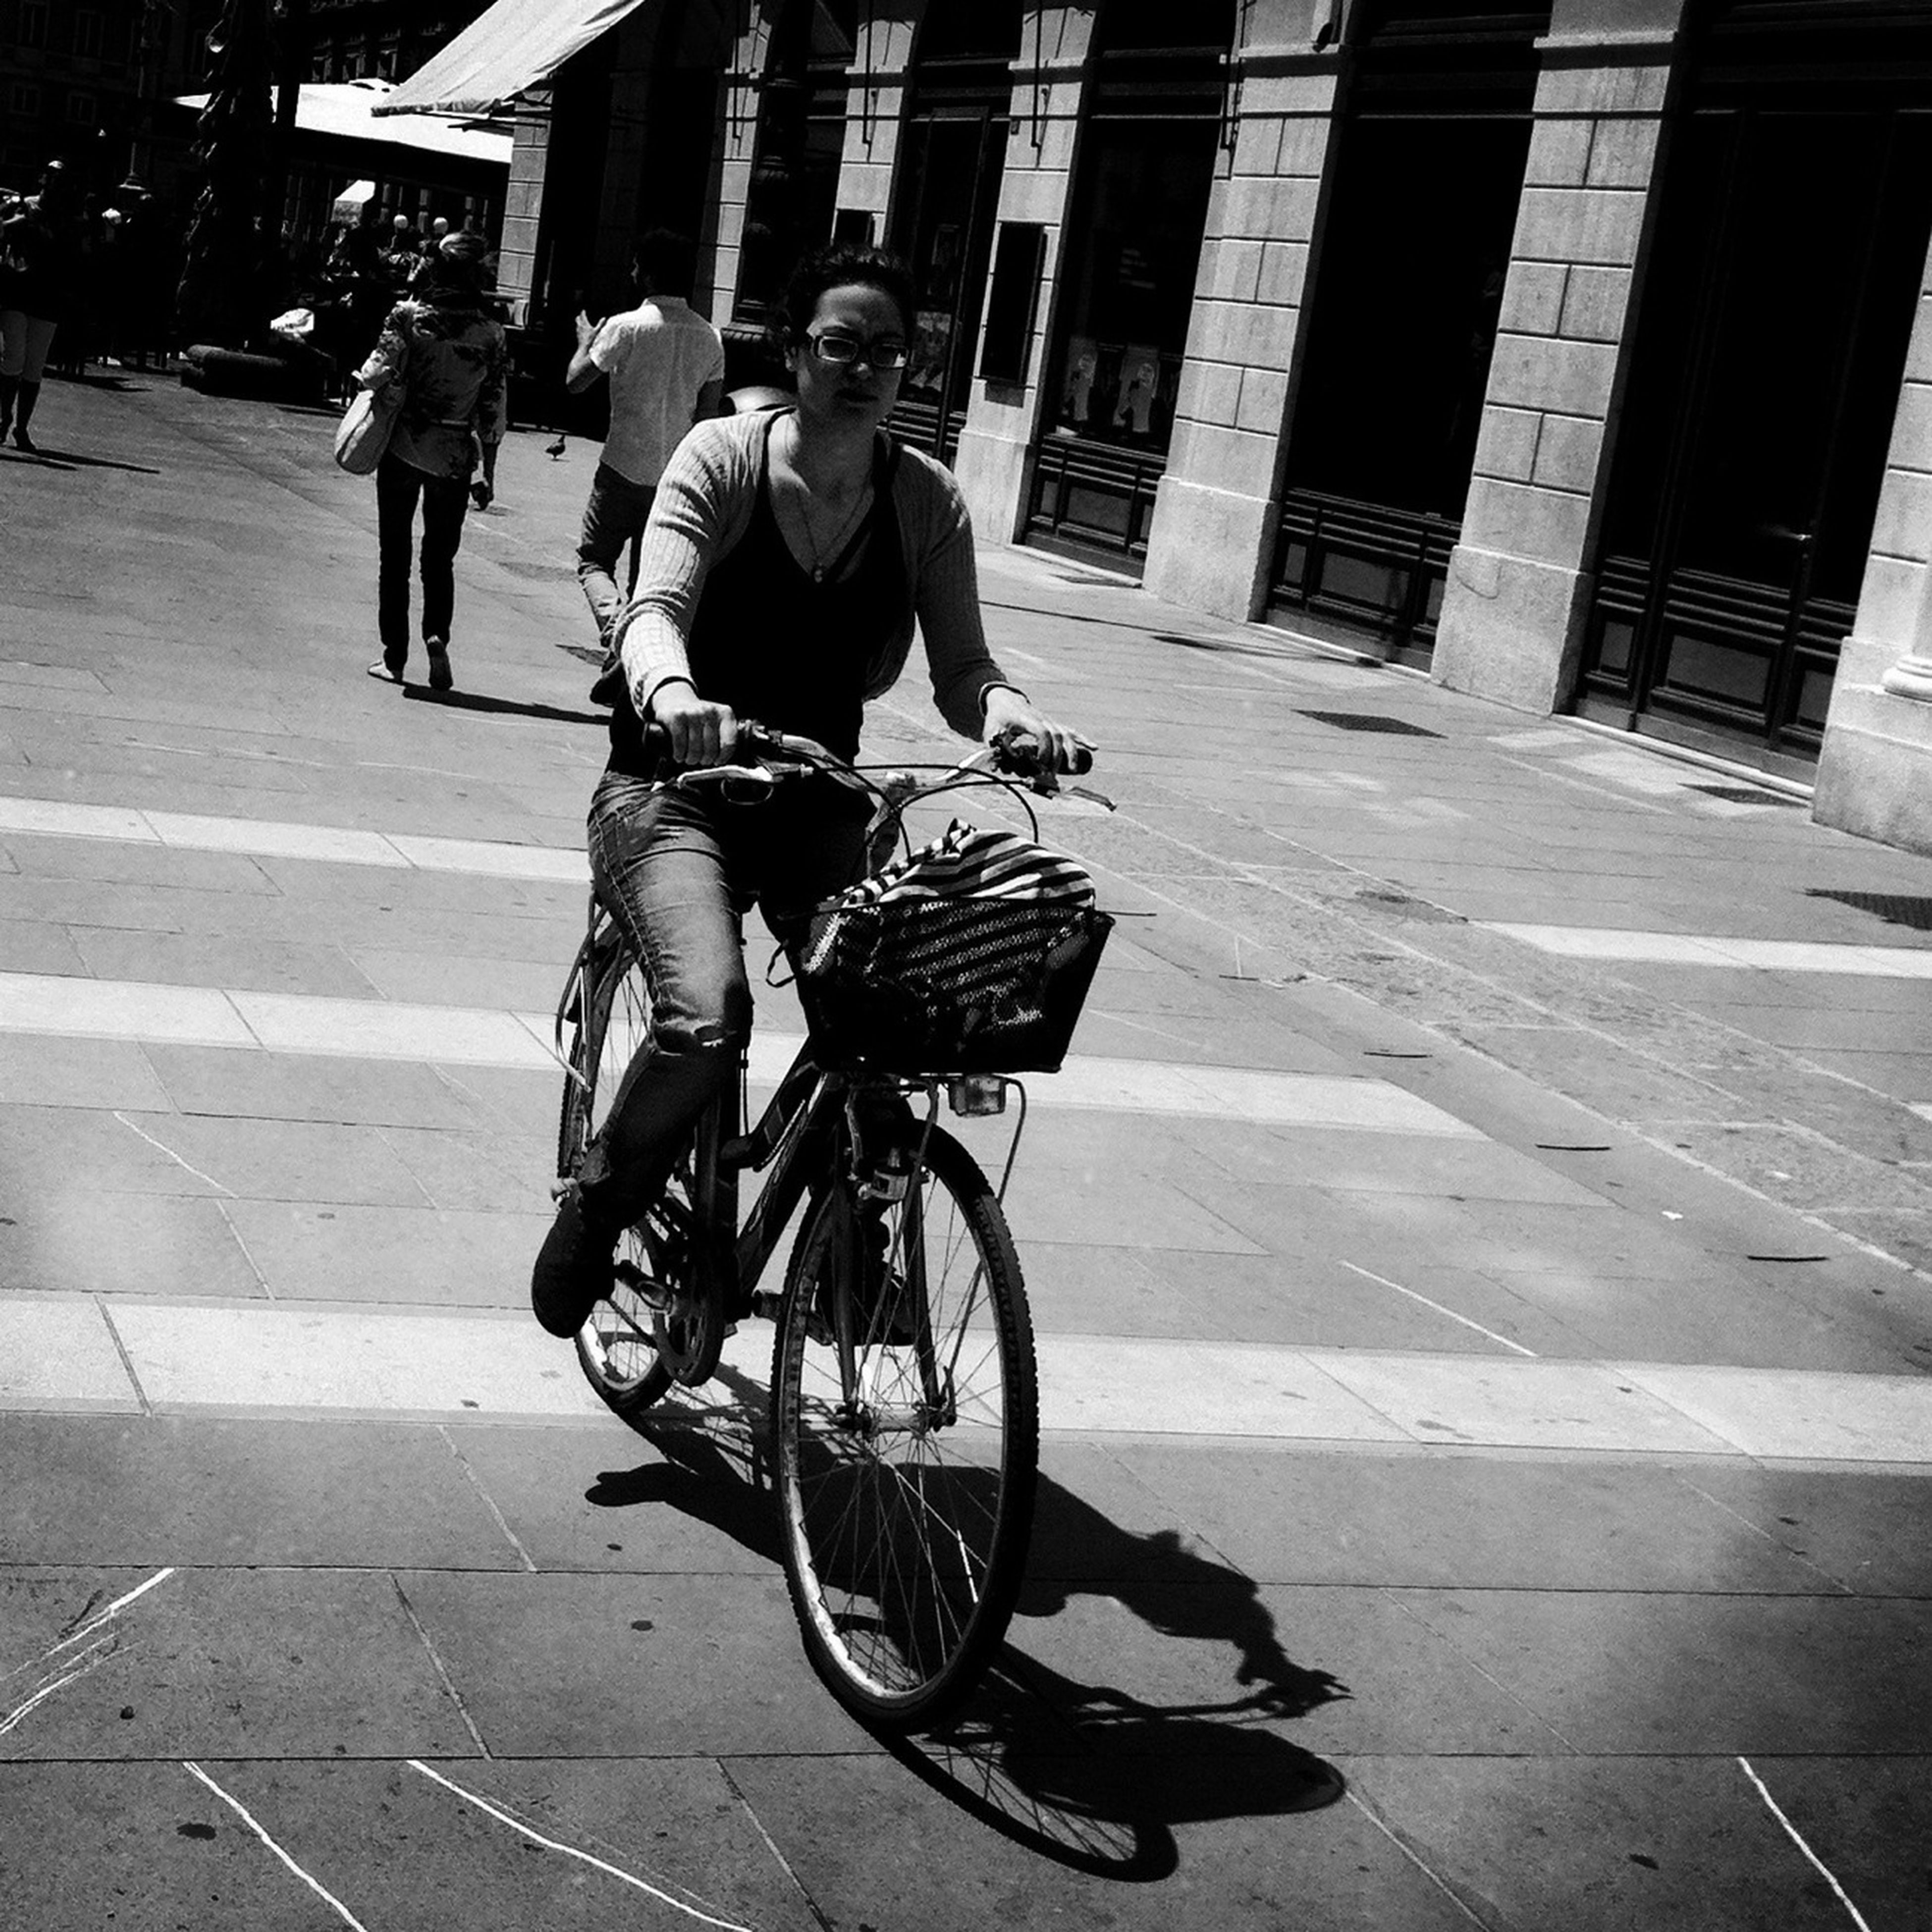 bicycle, transportation, full length, street, mode of transport, land vehicle, lifestyles, men, casual clothing, leisure activity, riding, walking, building exterior, city, road, city life, built structure, architecture